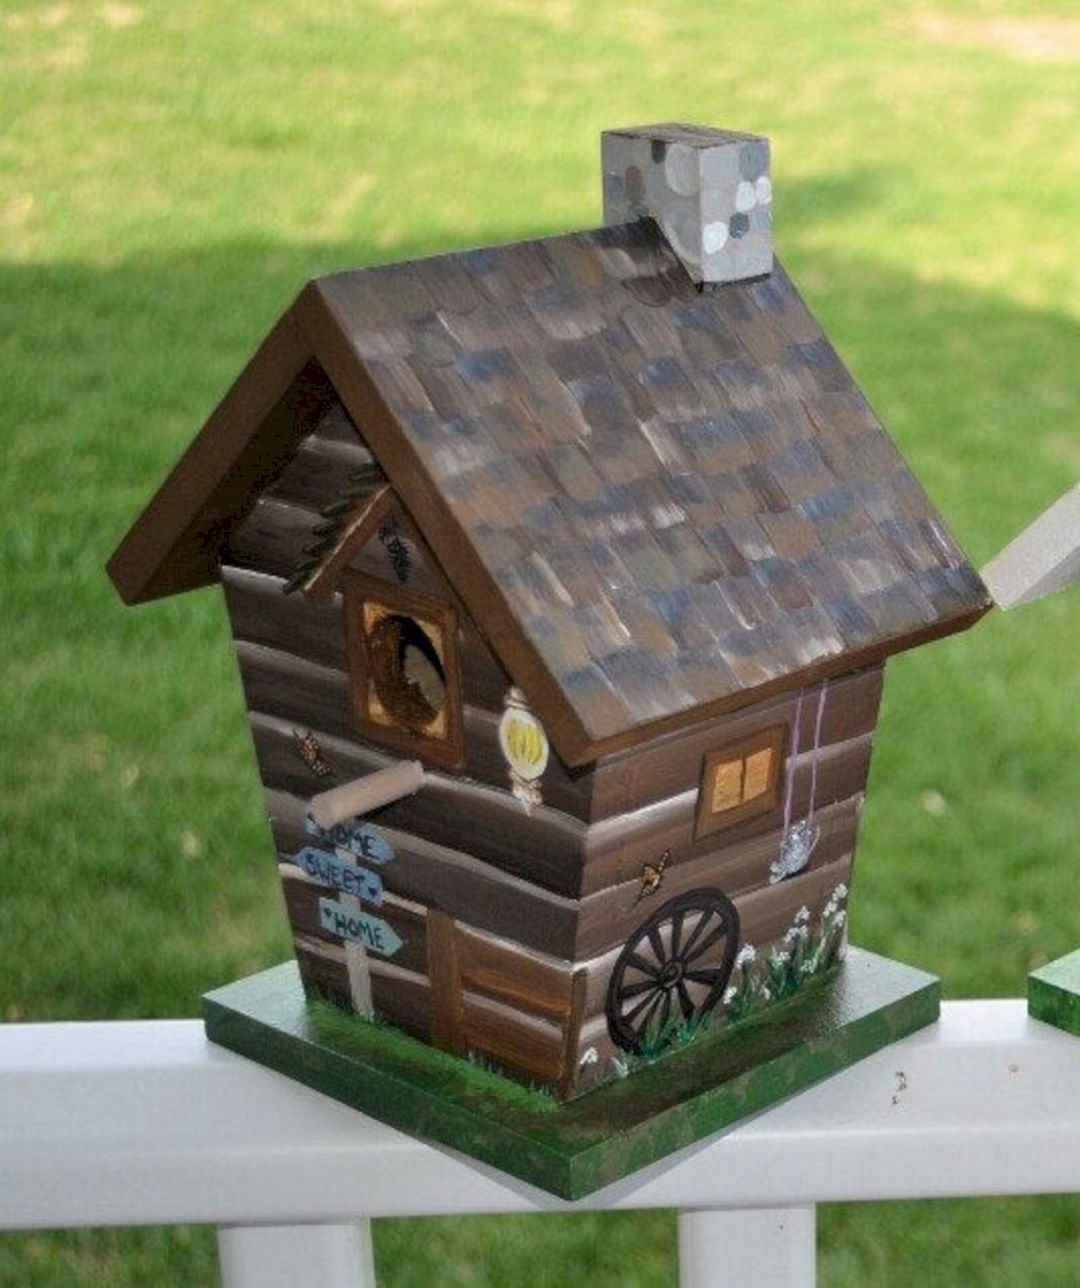 Birdhouse Design Ideas 22 gorgeous and unique birdhouse designs Beautiful Painted Birdhouse Design Ideas For Your Awesome Garden